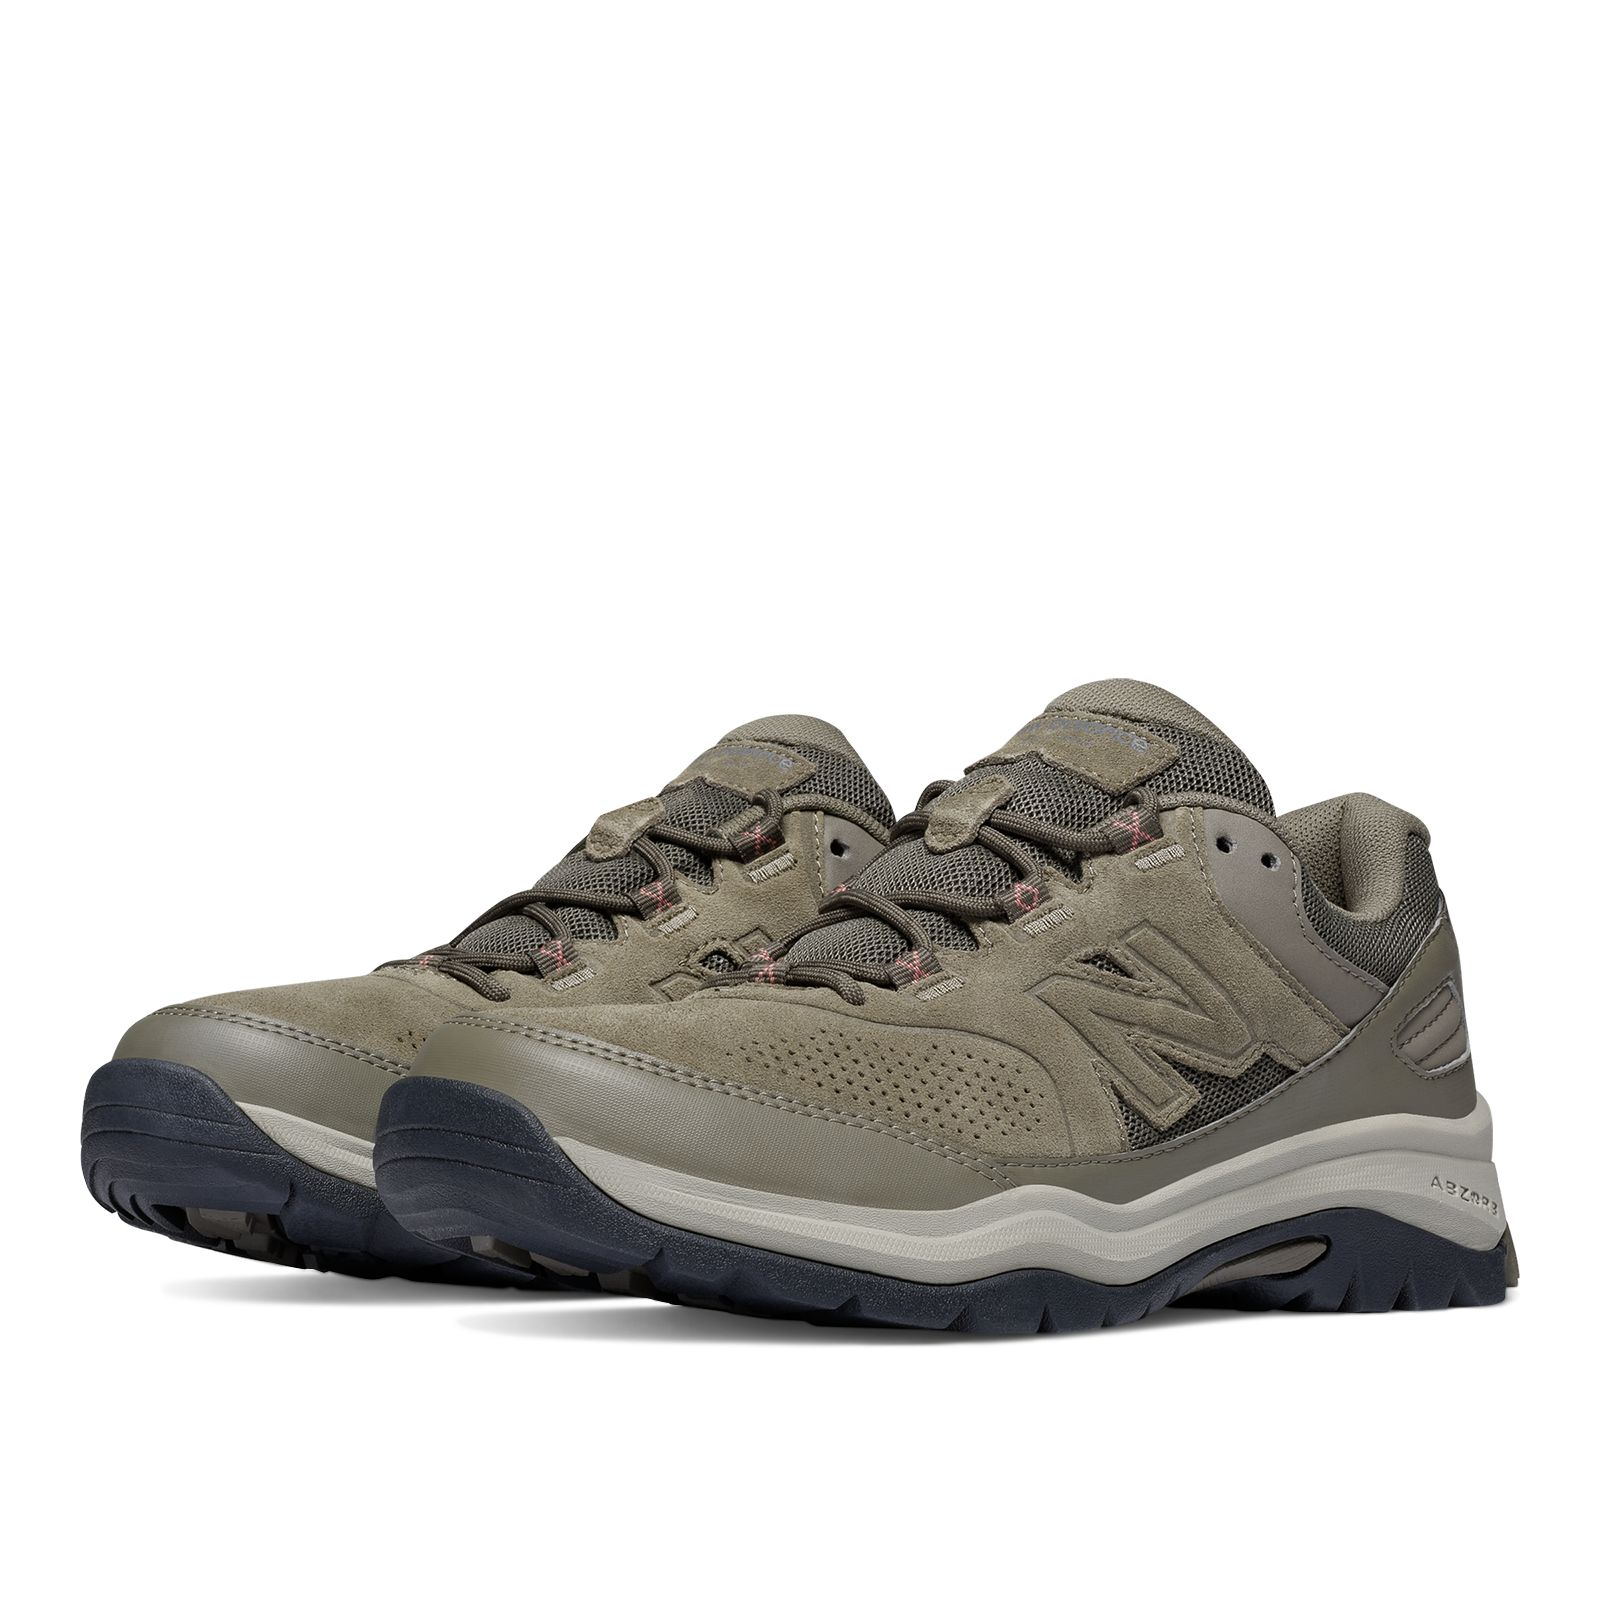 New Balance : New Balance 769 : Women's Hiking & Walking : WW769GR